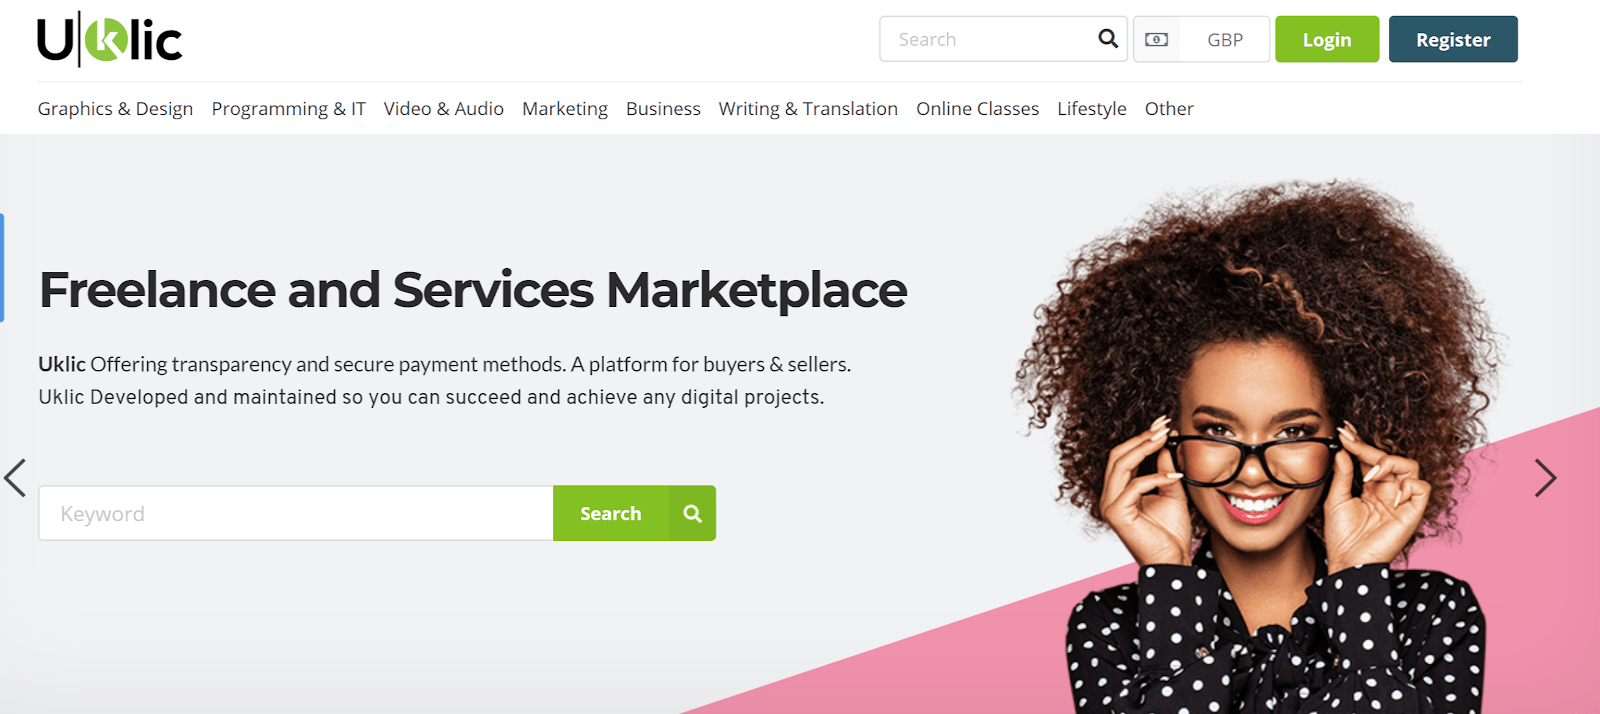 uklic home page